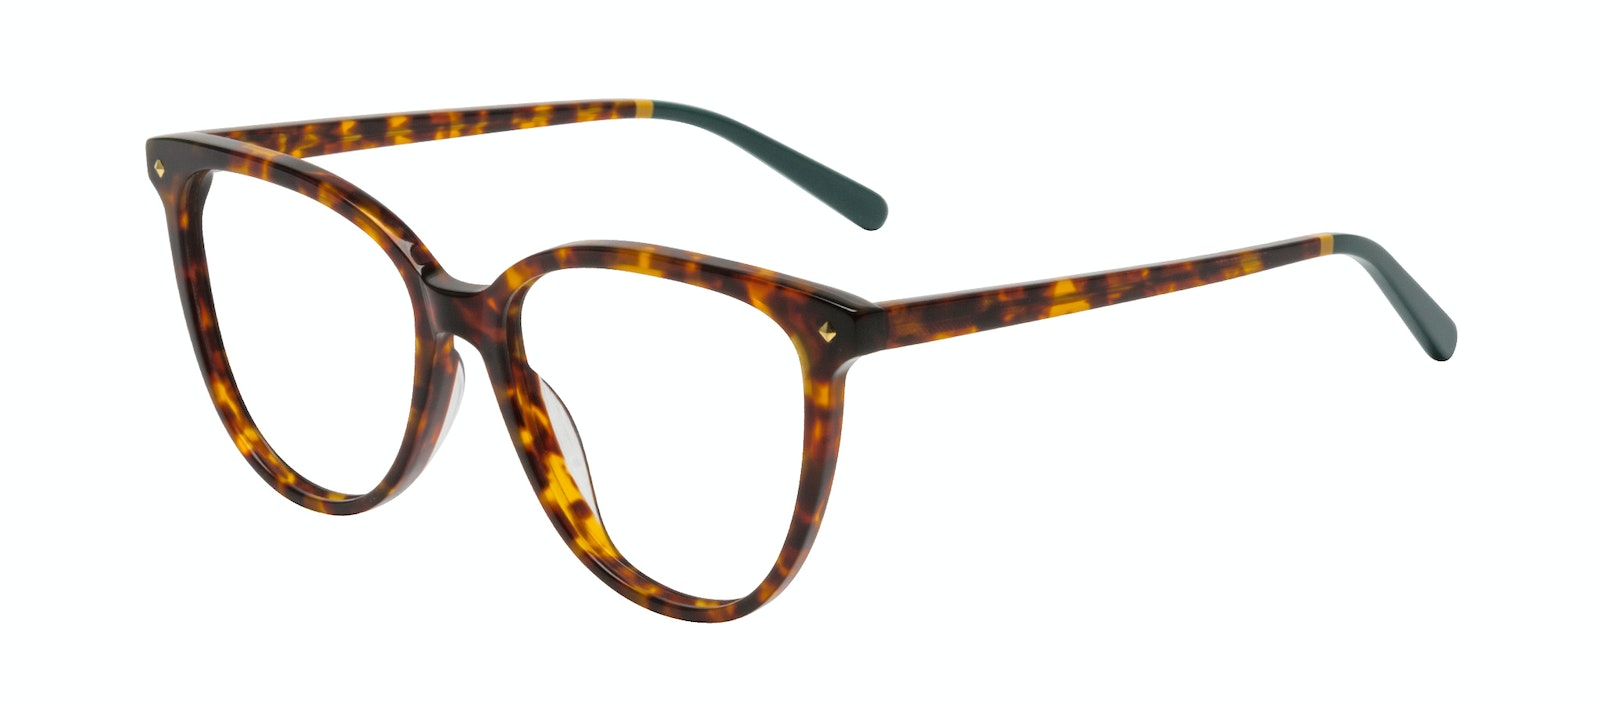 Affordable Fashion Glasses Eyeglasses Women Jane Tortoise Tilt